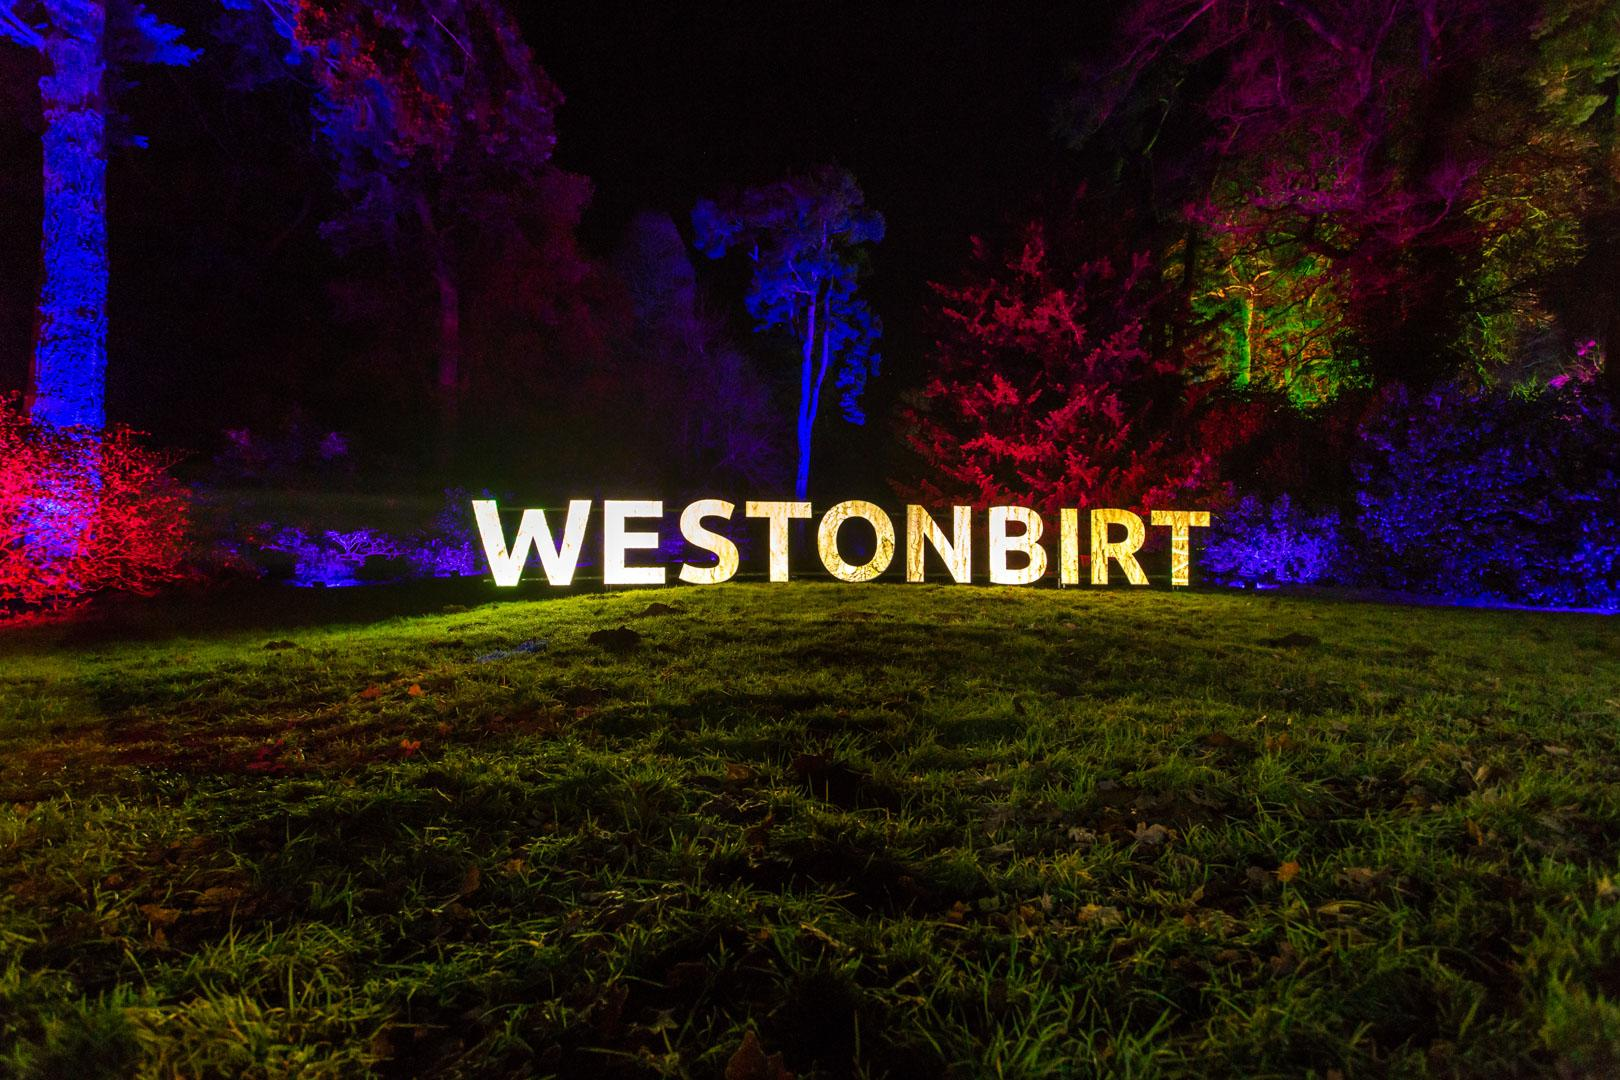 Westonbirt Enchanted Christmas Letters, projection